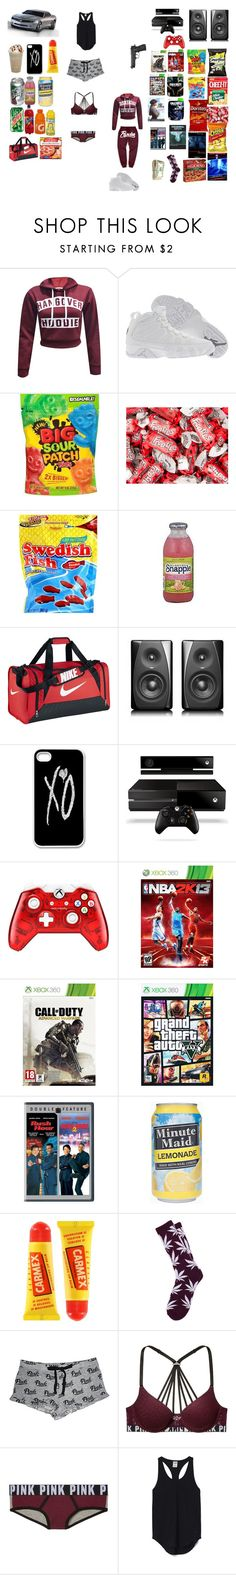 """Untitled #90"" by tnasty15 ❤ liked on Polyvore featuring Retrò, FRUIT, NIKE, xO Design, Poetic Justice, Disney, Carmex, HUF and Victoria's Secret"